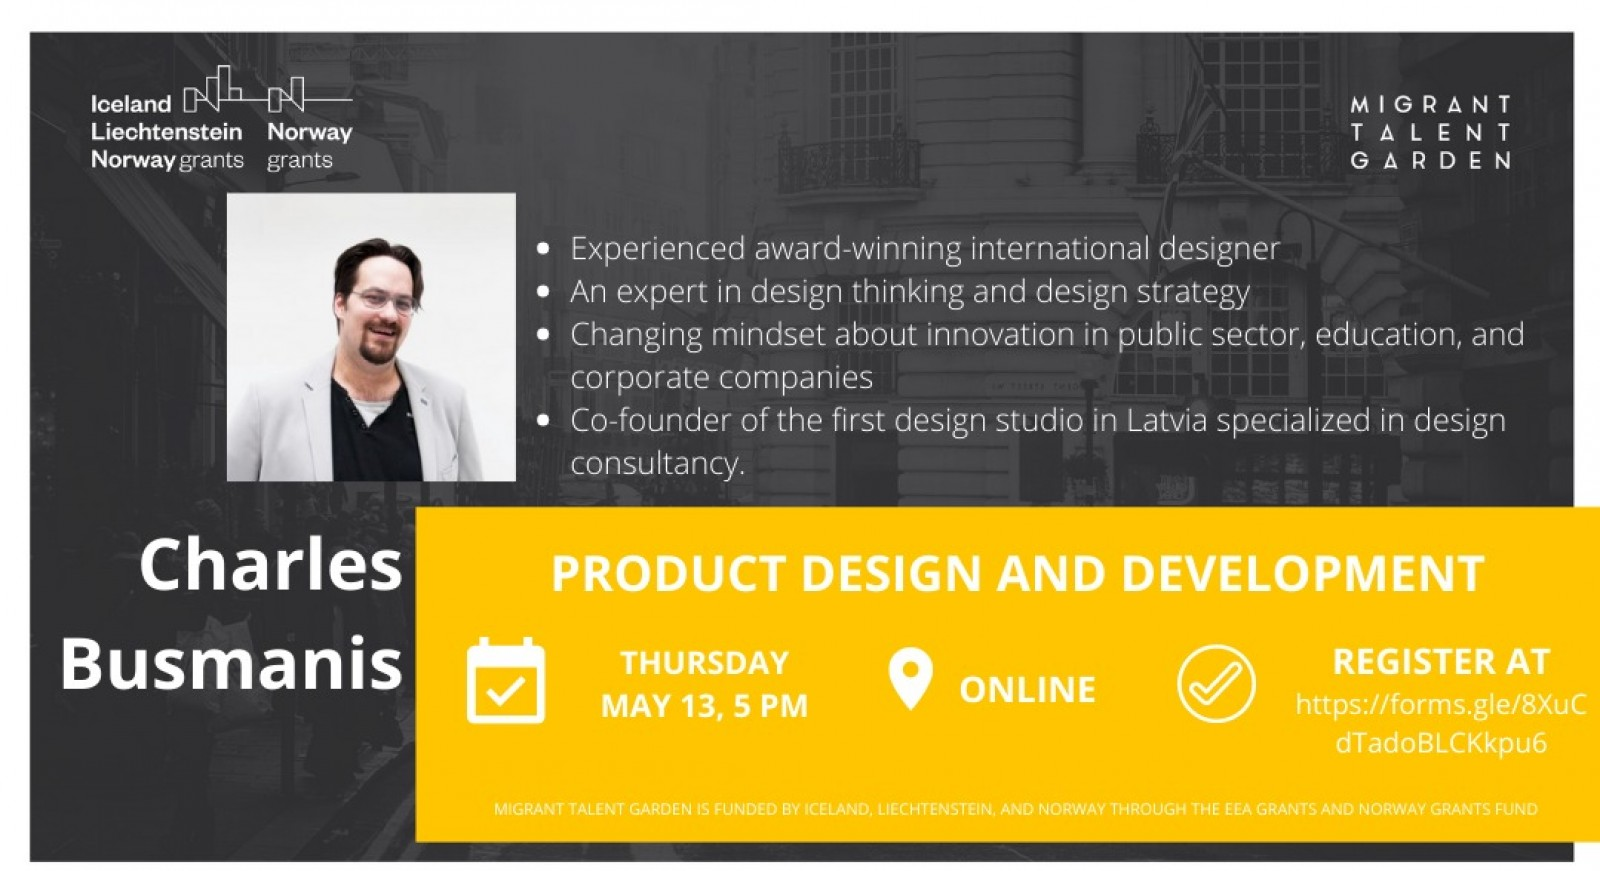 Lecture on product design and development will be held on thursday may 13th. | Patvērums Drošā Māja